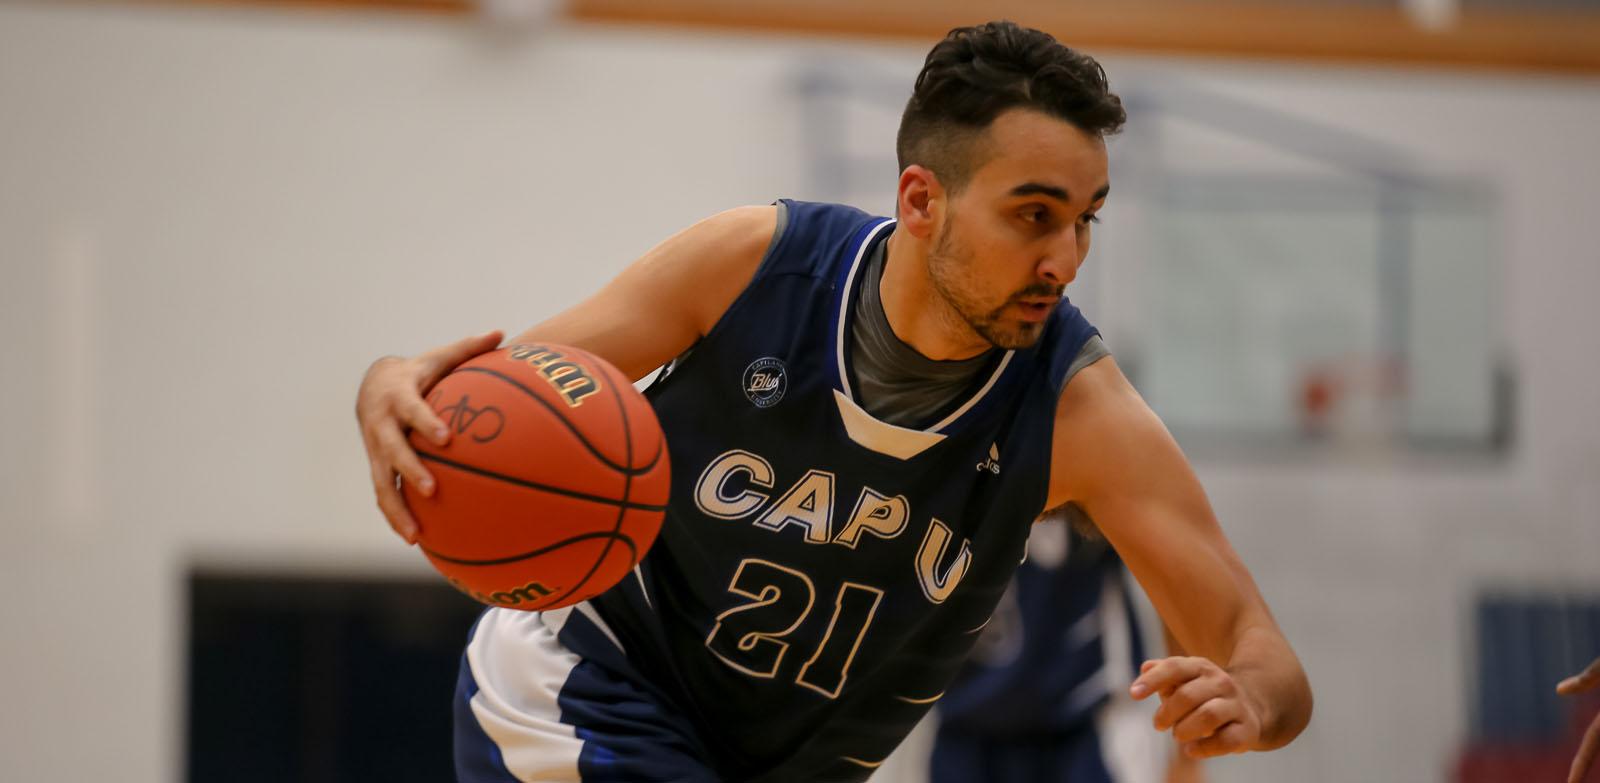 CapU fourth-year forward Niko Mottus. Photo Paul Yates / Vancouver Sports Pictures